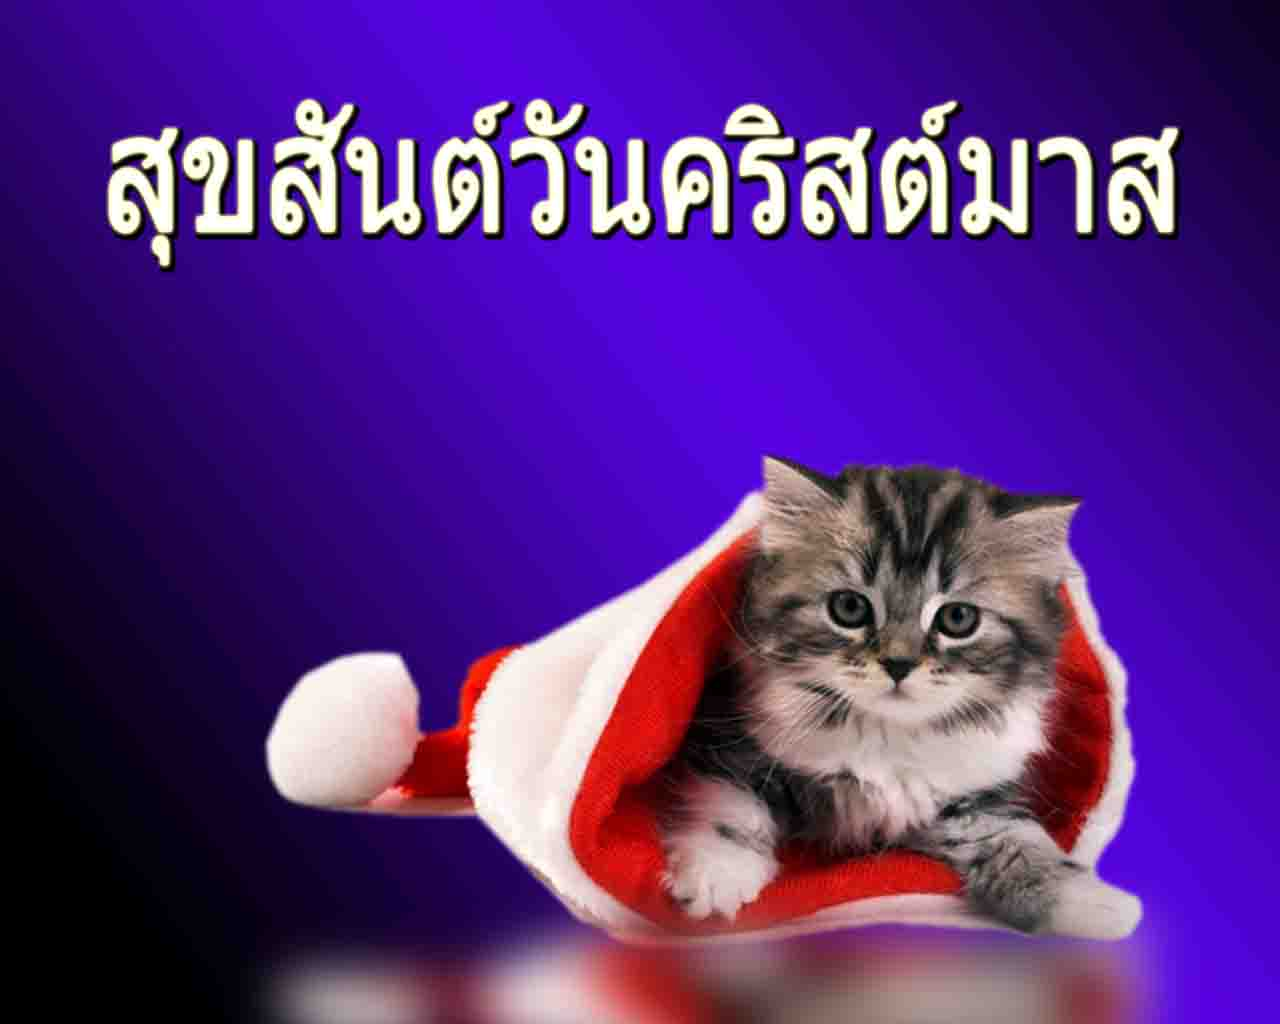 Merry Christmas in Thai - Happy New Year 2017